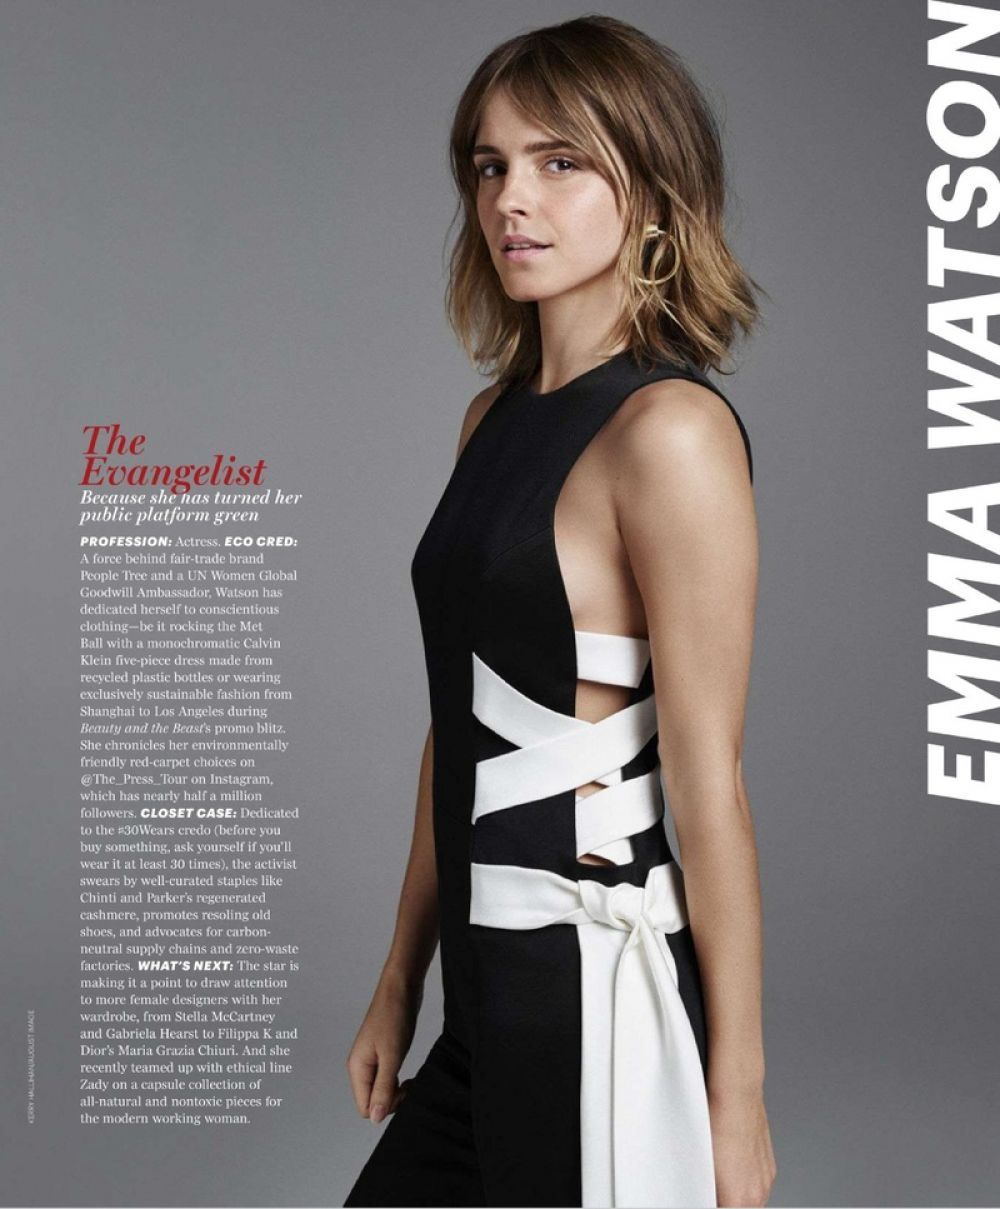 EMMA WATSON in Marie Claire Magazine, August 2017